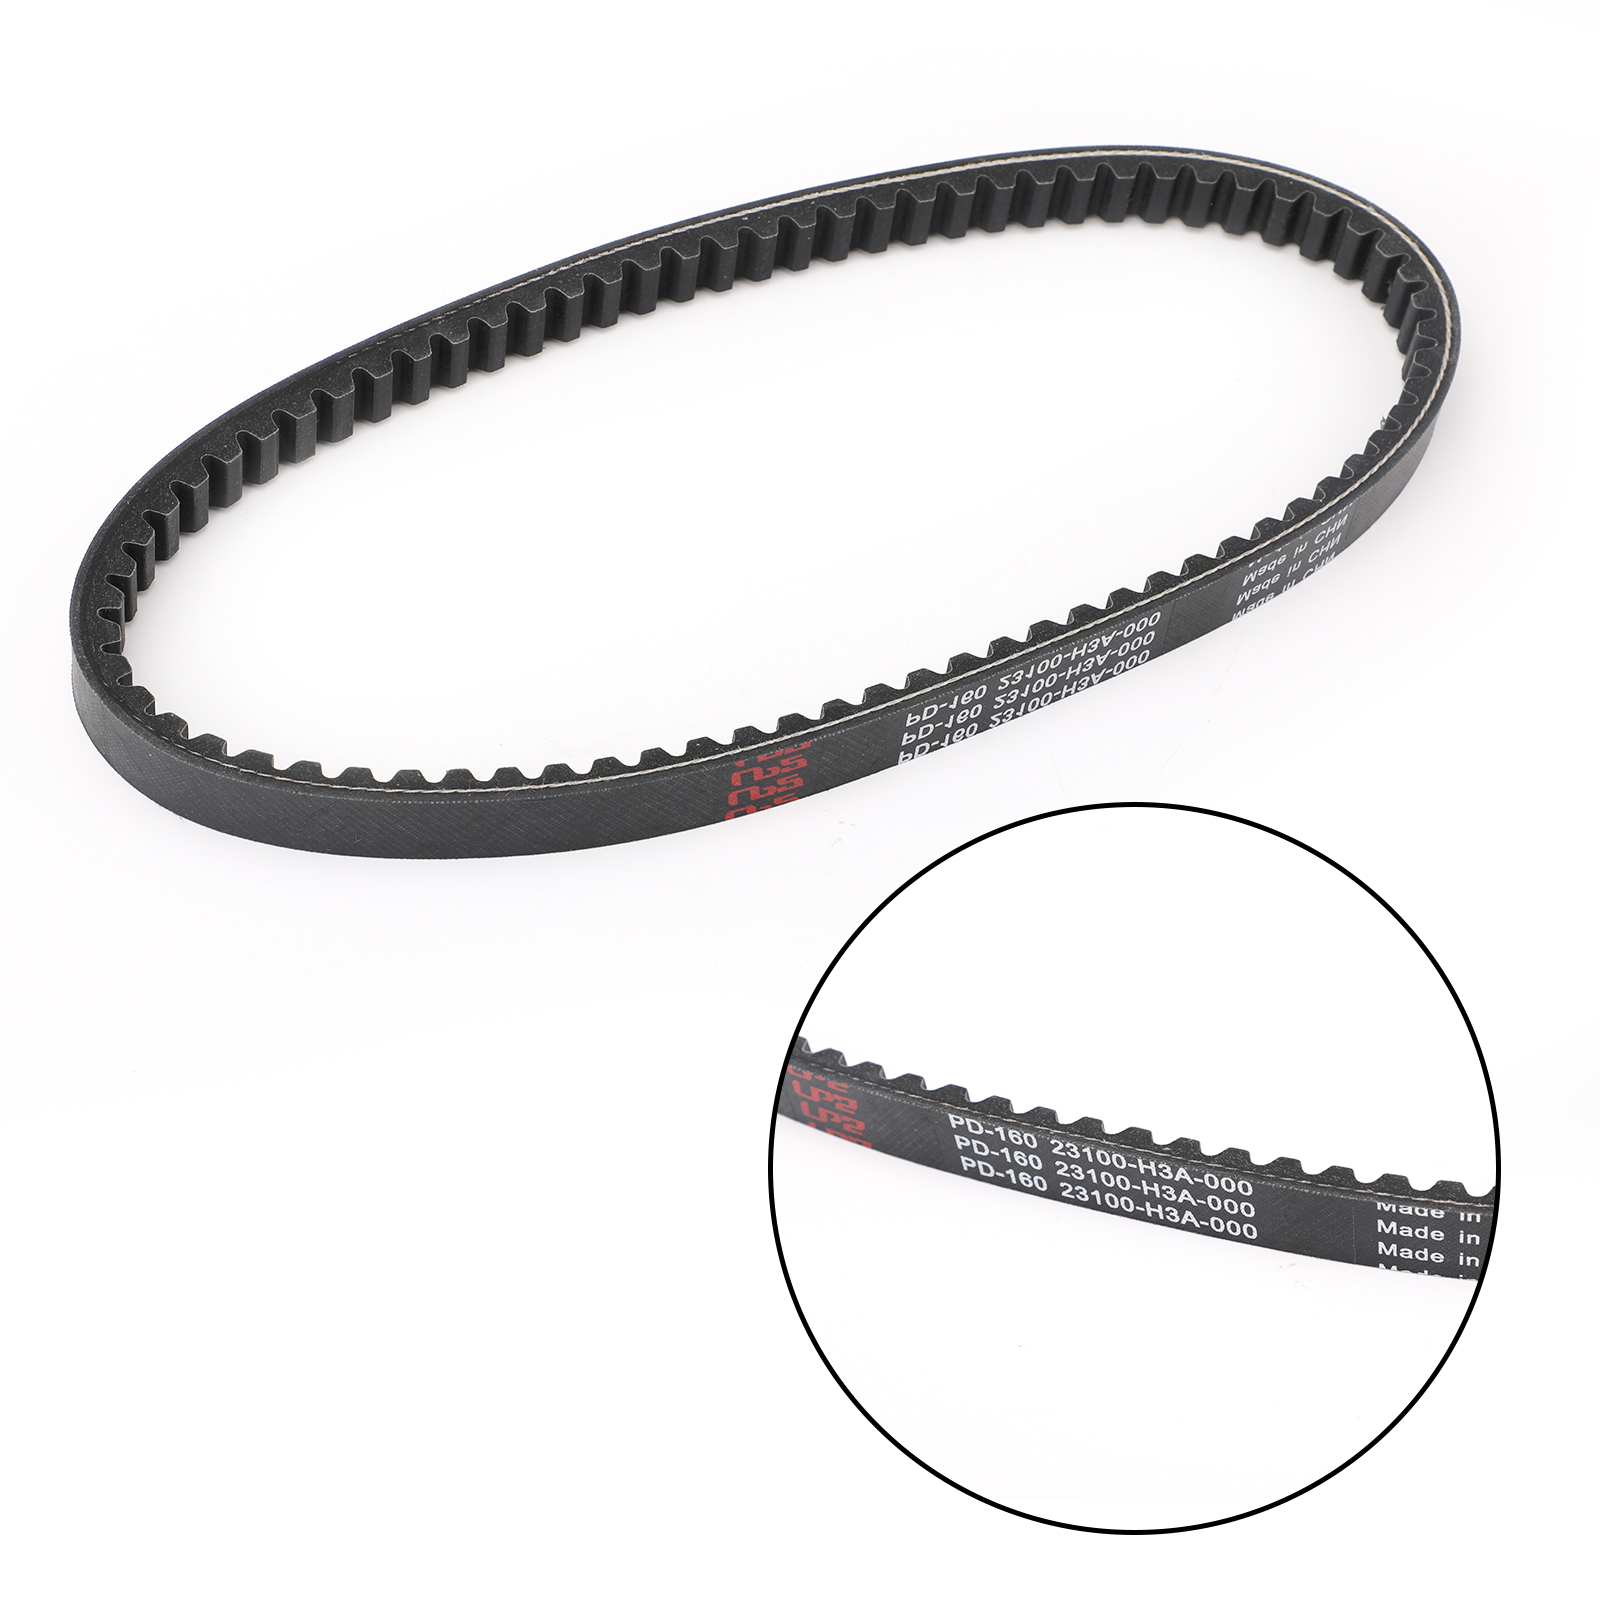 Details about Primary Drive Clutch Belt For SYM SHARK 125 150 Euro MX  Scooter 23100-H3A-0000